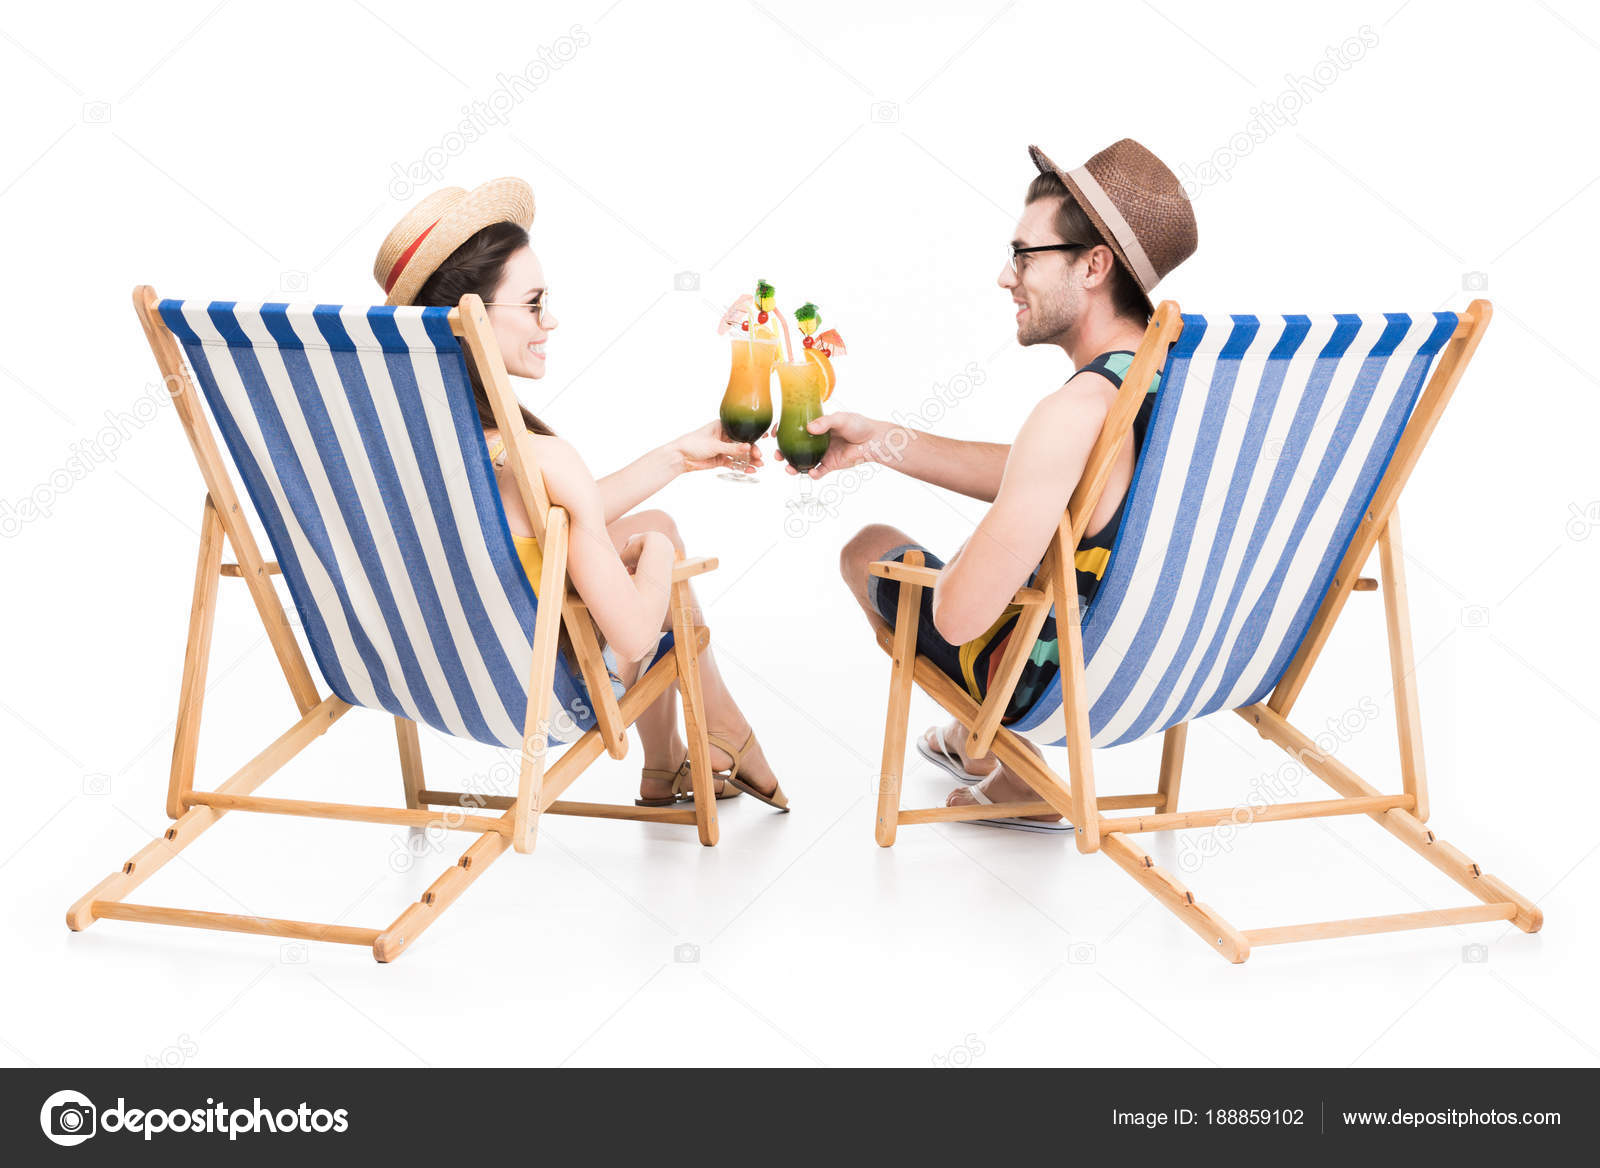 Images Sitting On Beach Couple Sitting Beach Chairs Clinking Cocktail Glasses Isolated White Stock Photo C Allaserebrina 188859102